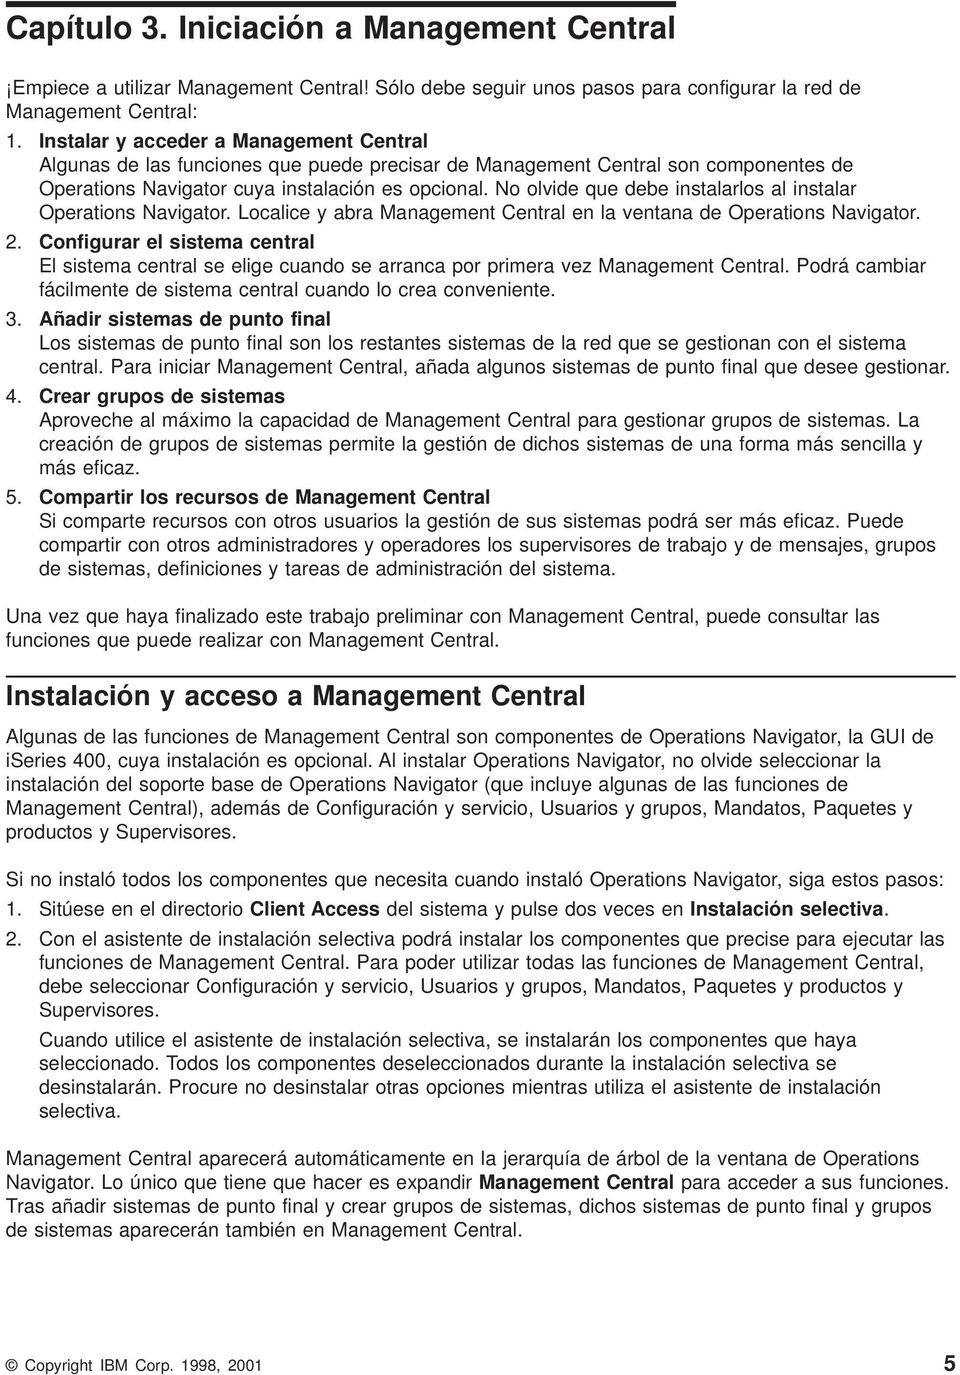 No olide que debe instalarlos al instalar Operations Naigator. Localice y abra Management Central en la entana de Operations Naigator. 2.